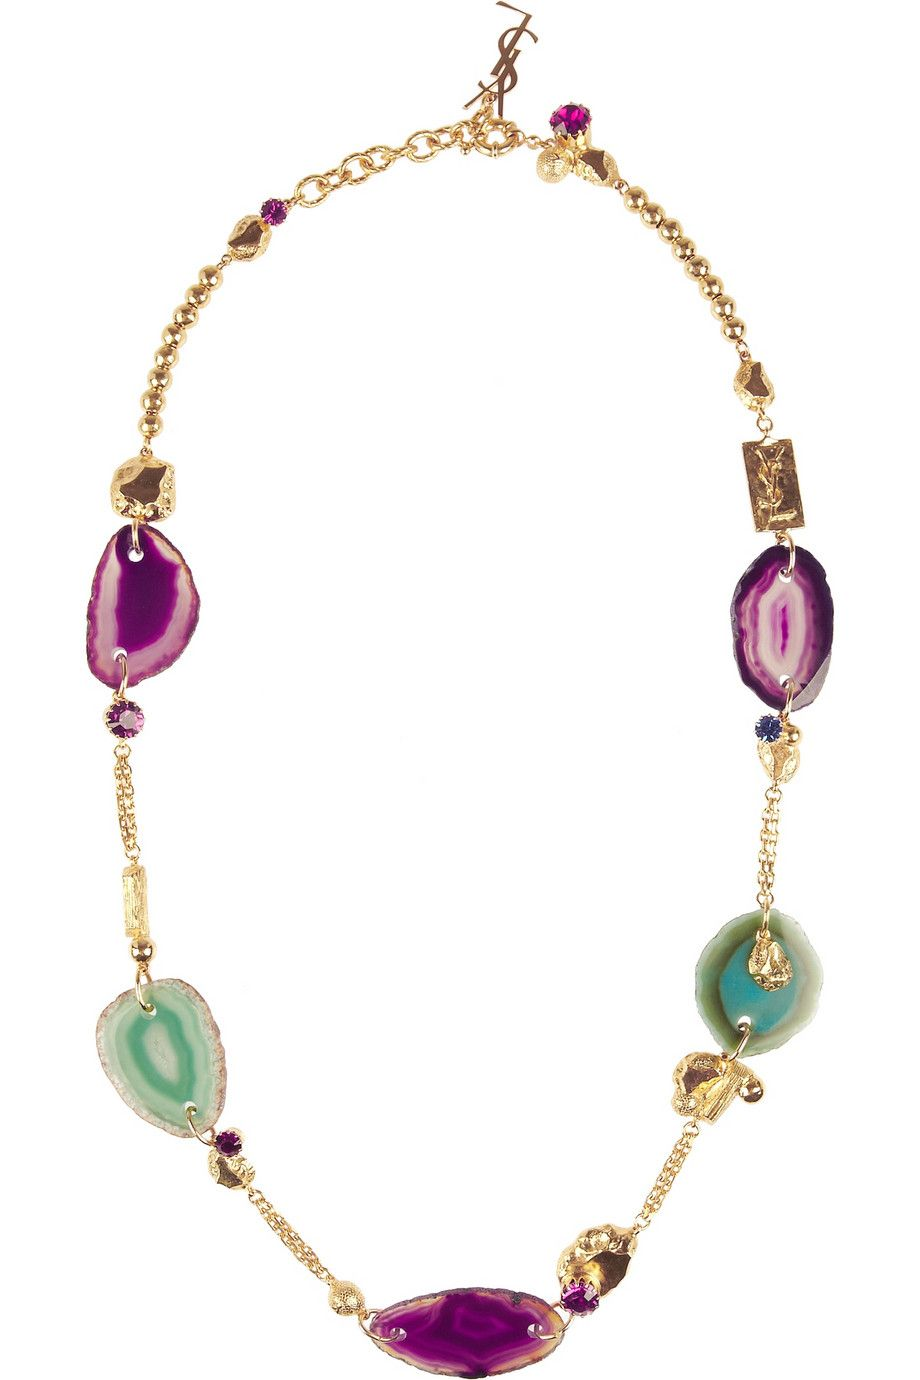 Yves Saint Laurent Jewelry Pinterest Gold necklaces Yves